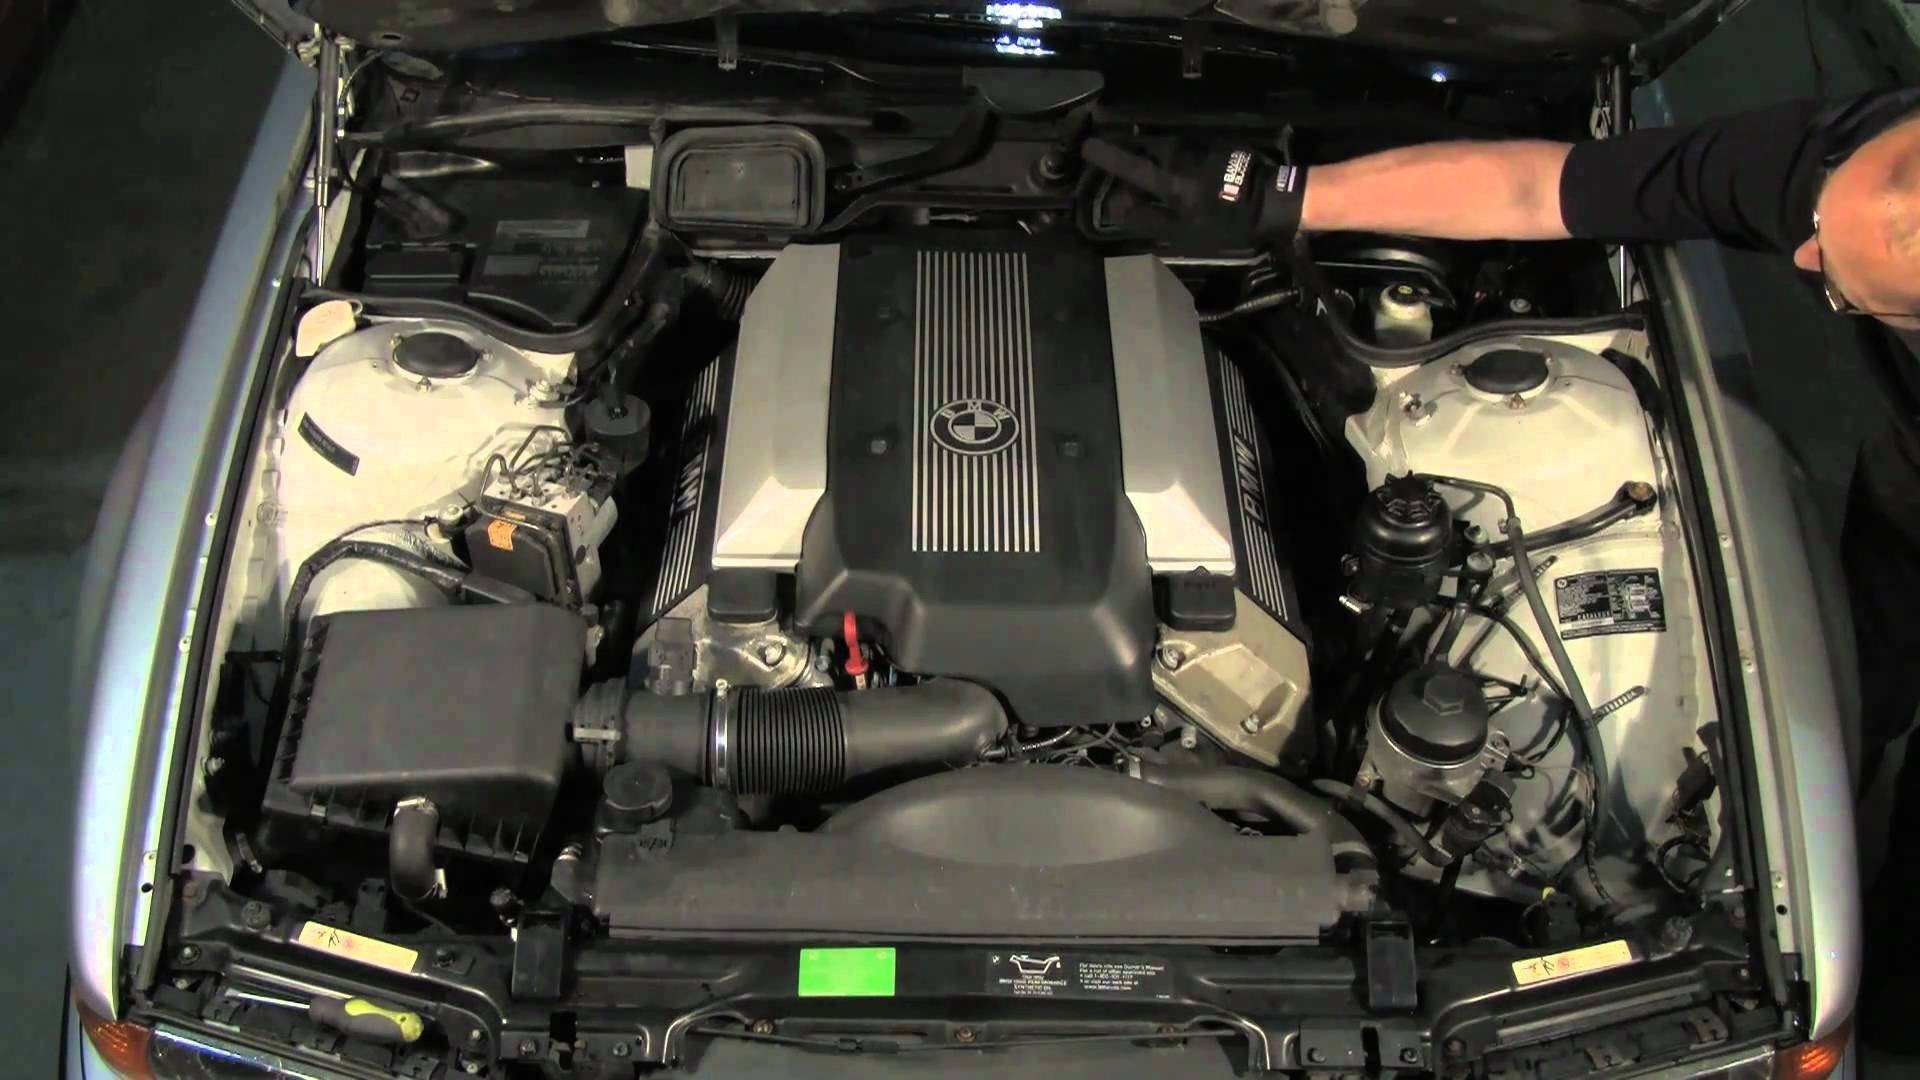 Bmw E39 Engine Diagram 5 Series Abs Asc Module Replacement Under The Hood A 7 95 Thru 01 E38 Of